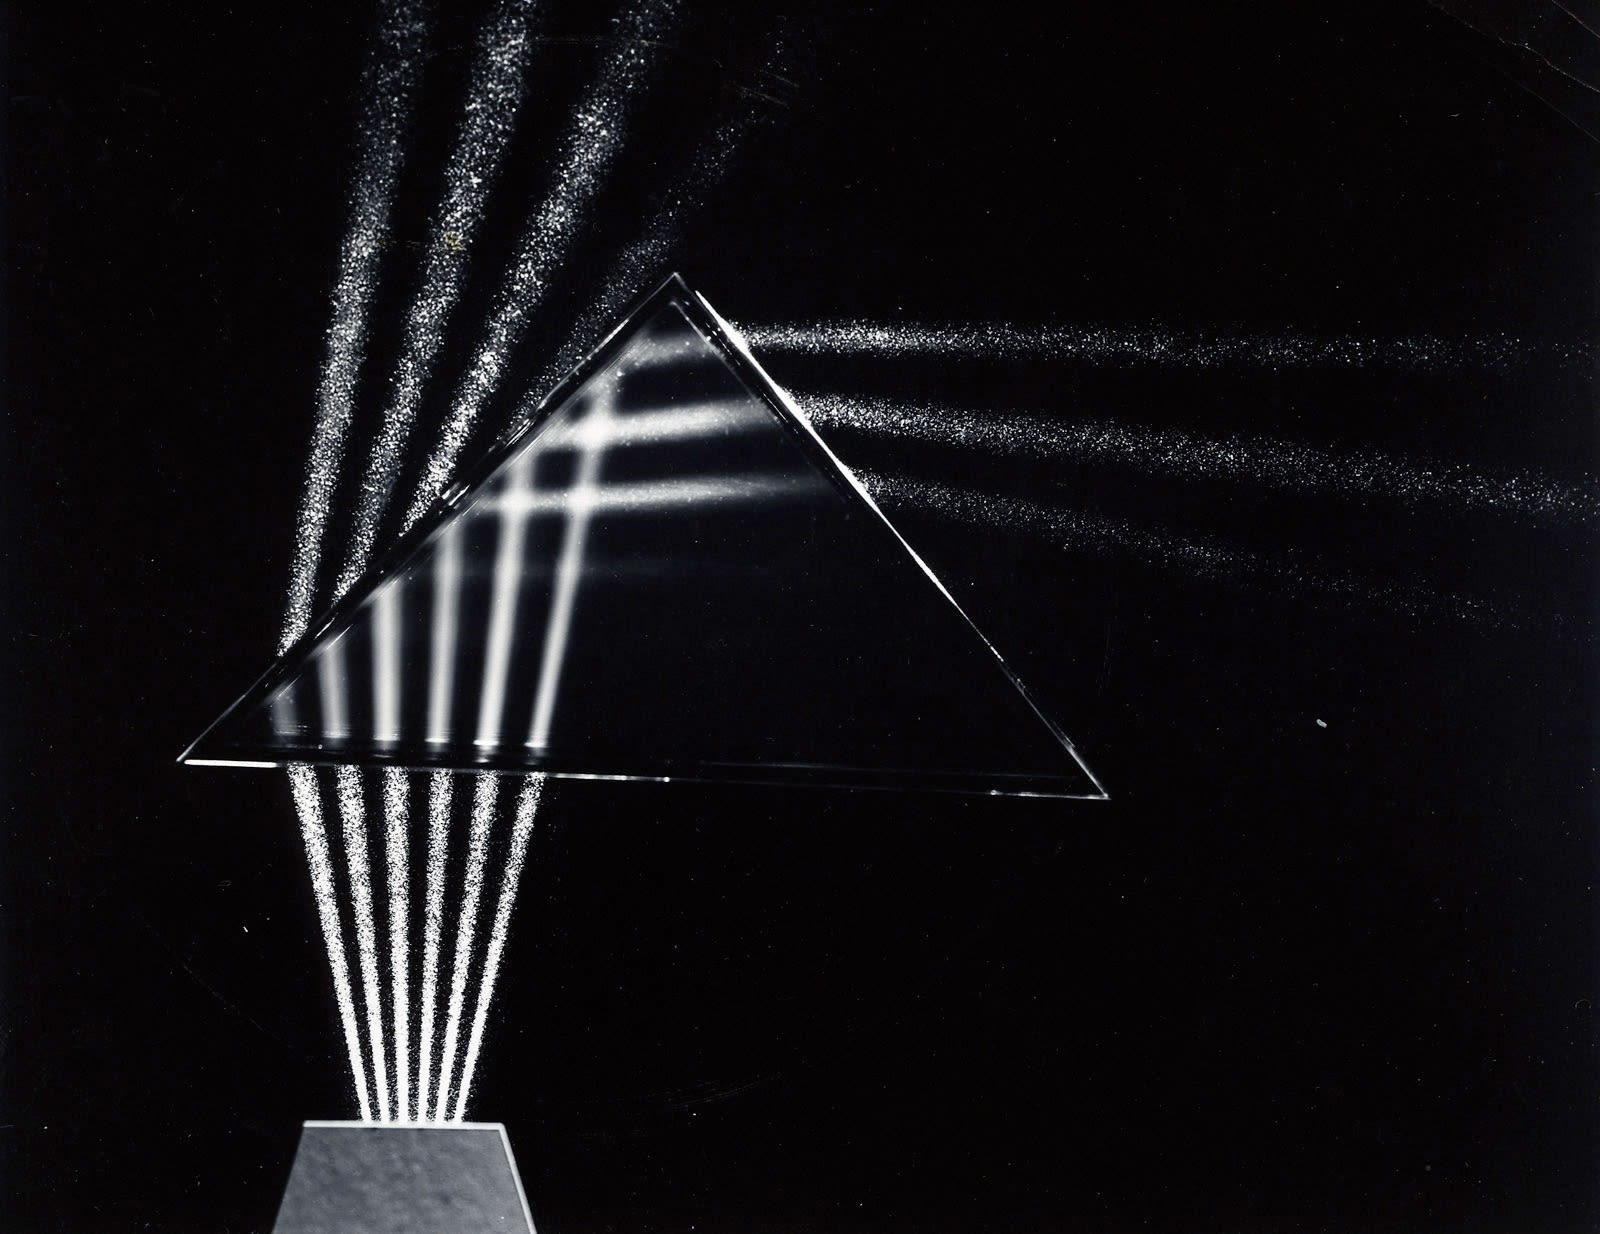 Berenice Abbott, Light through prism, Cambridge, Massachussetts, 1958-61